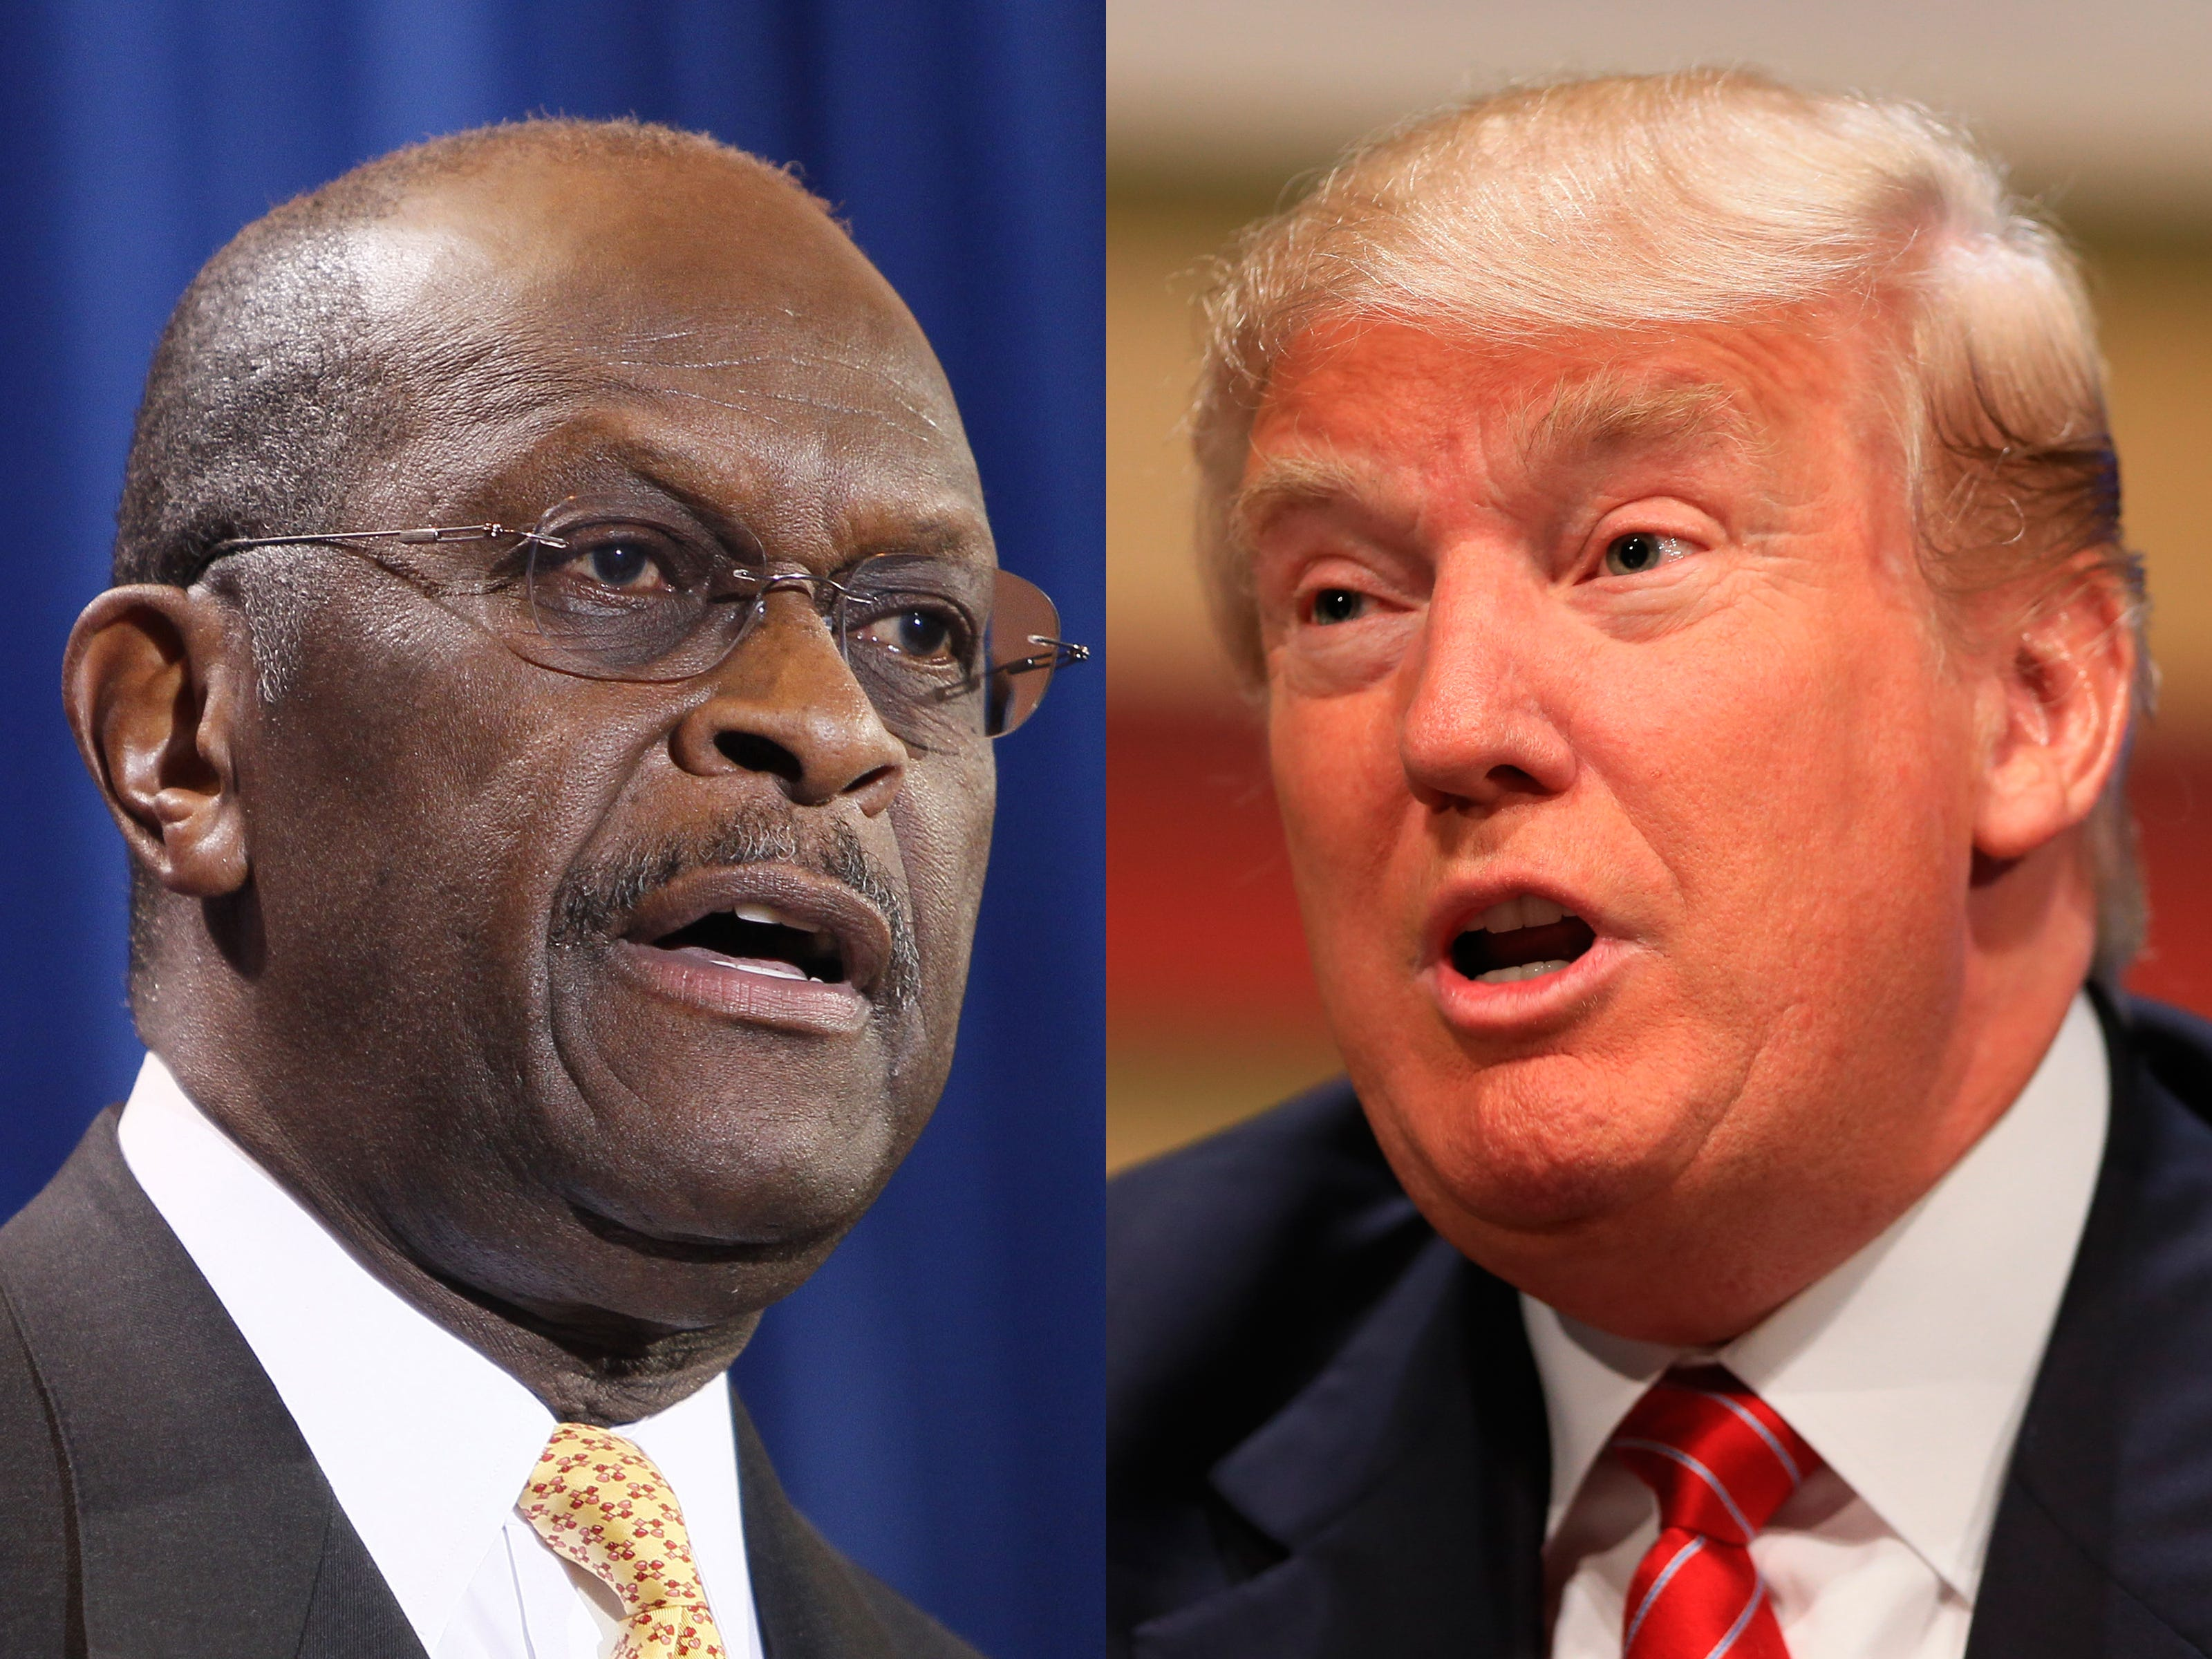 Report: Herman Cain won't withdraw from running for Federal Reserve, even though he lacks votes